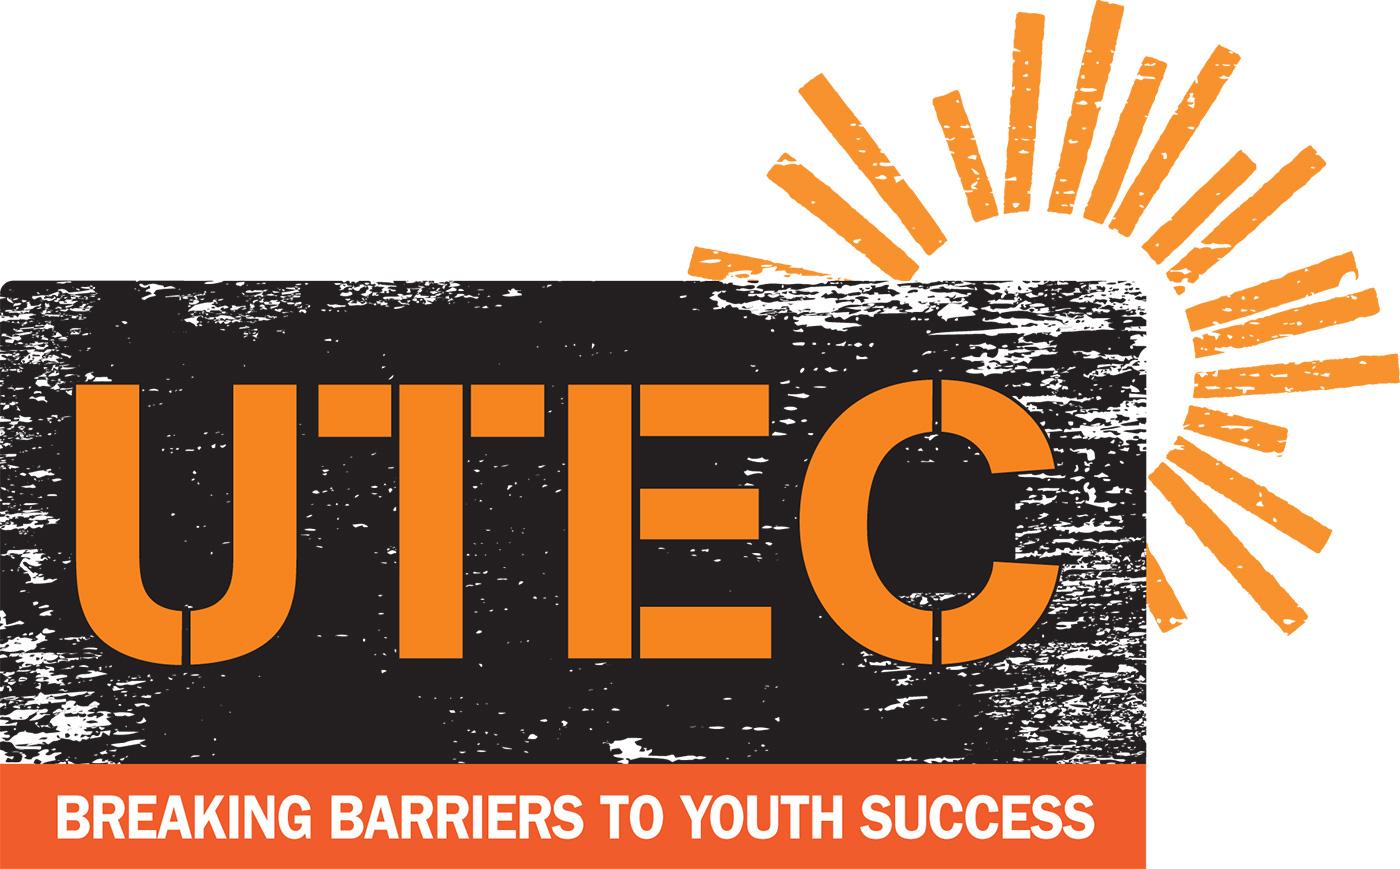 UTEC's mission is to ignite and nurture the ambition of our most disconnected young people to trade violence and poverty for social and economic success.